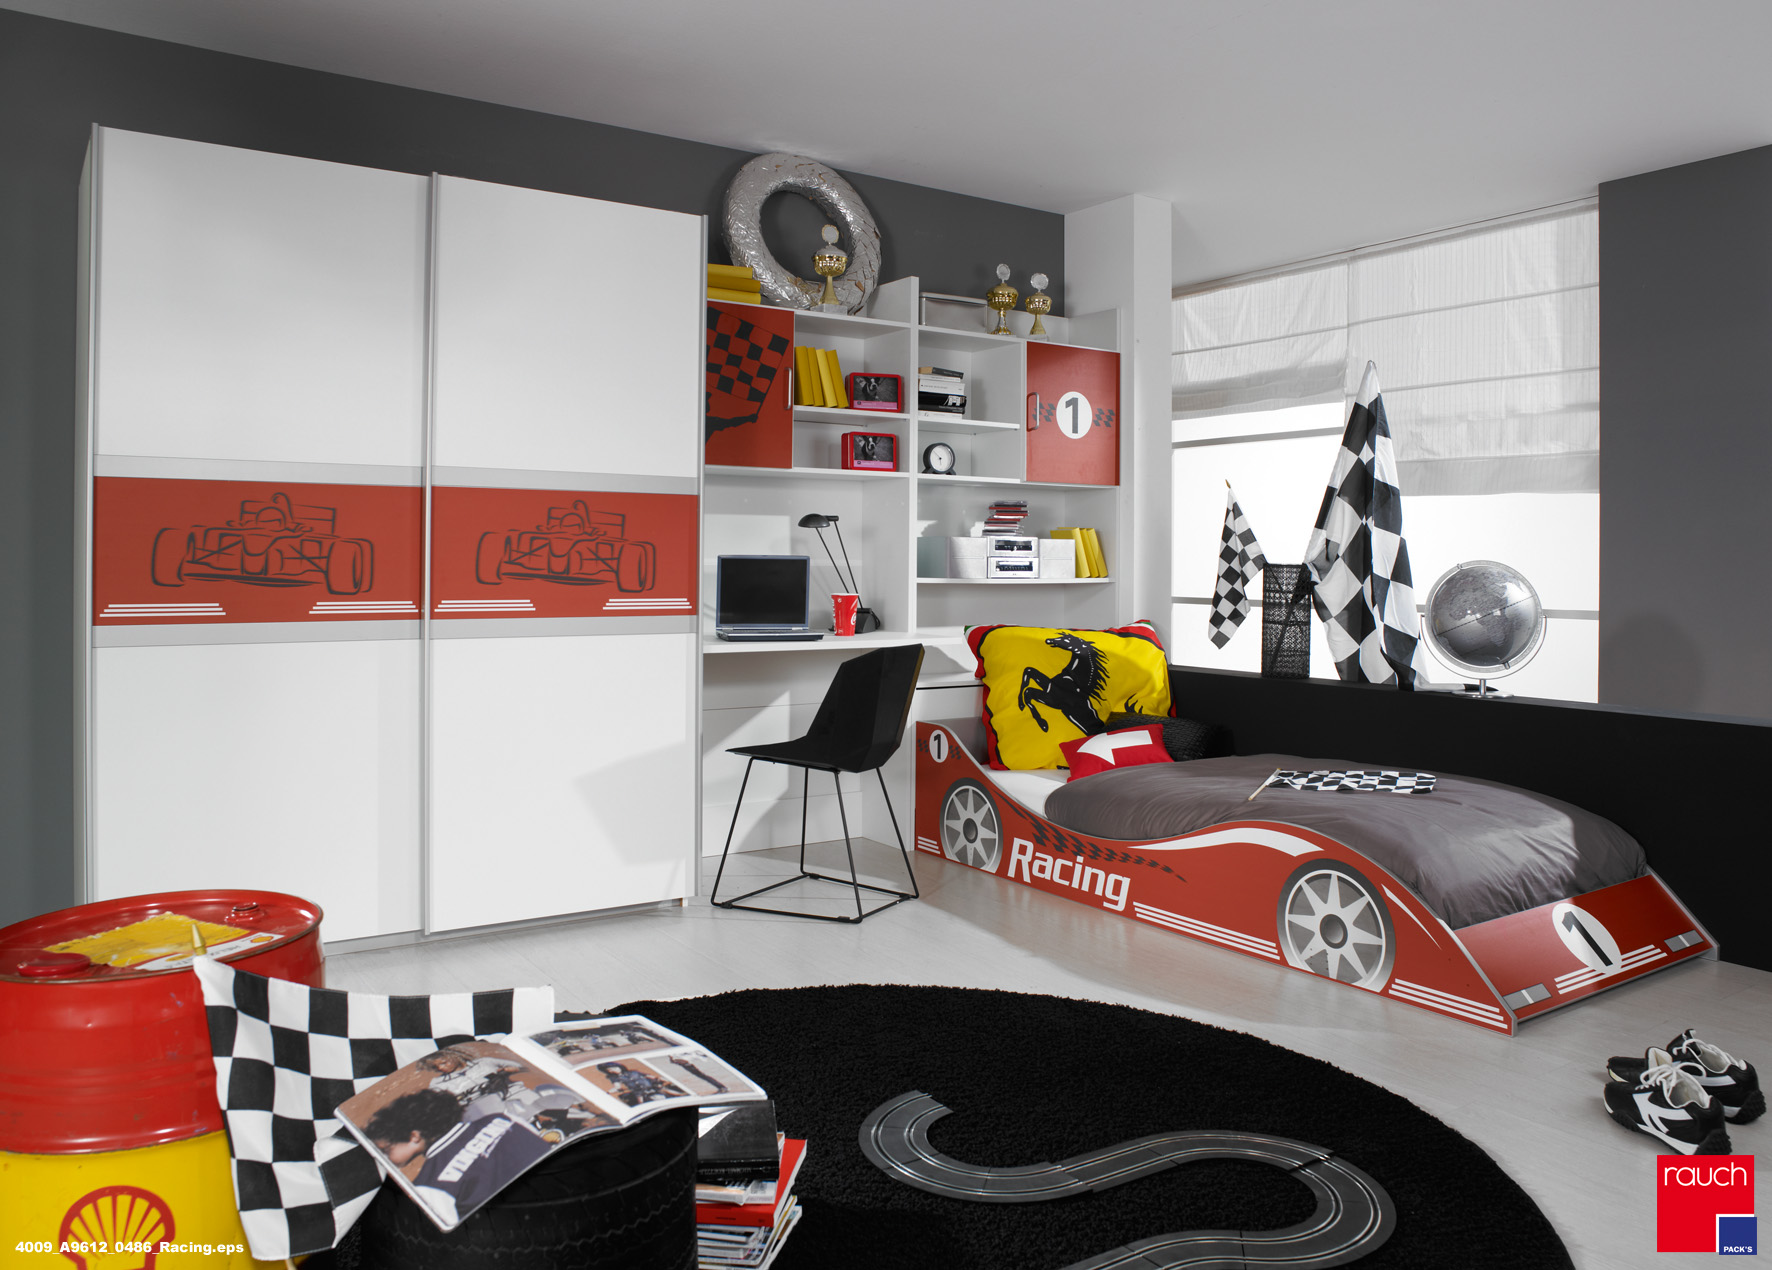 rauch racing kinderzimmer jugendzimmer autobett schrank schreibschrank. Black Bedroom Furniture Sets. Home Design Ideas